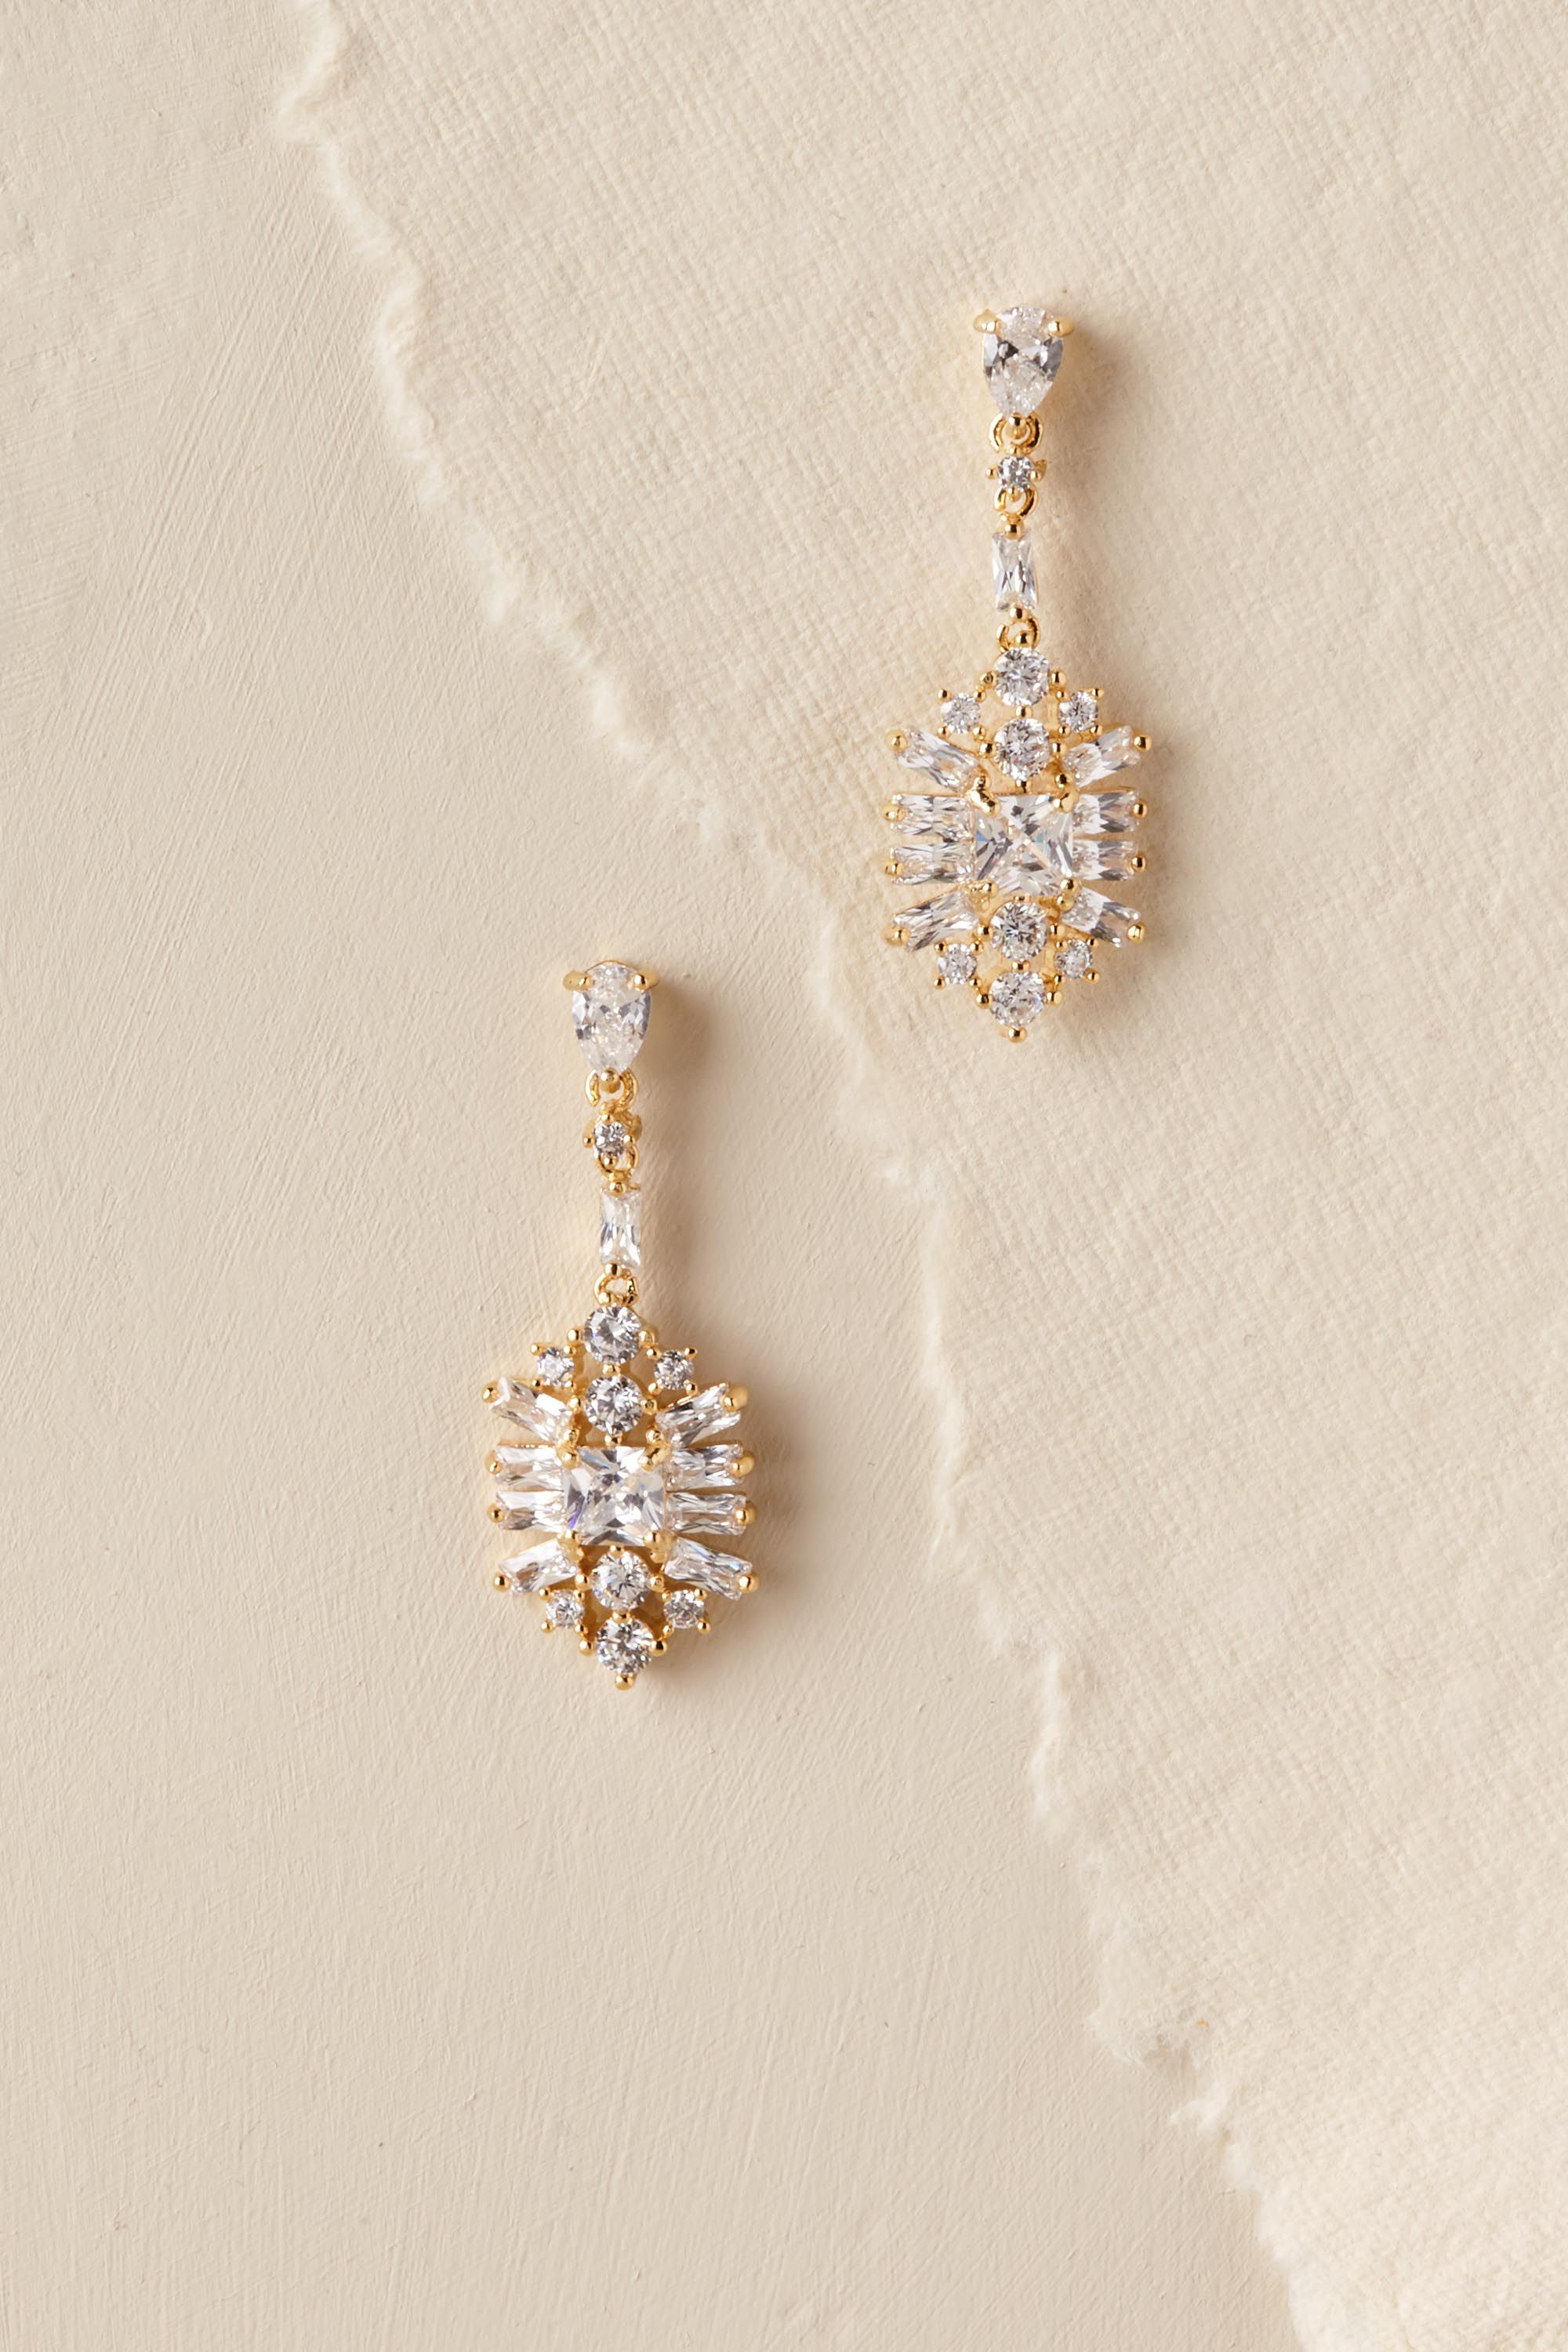 Bridesmaid Jewelry Earrings Necklaces Bracelets BHLDN